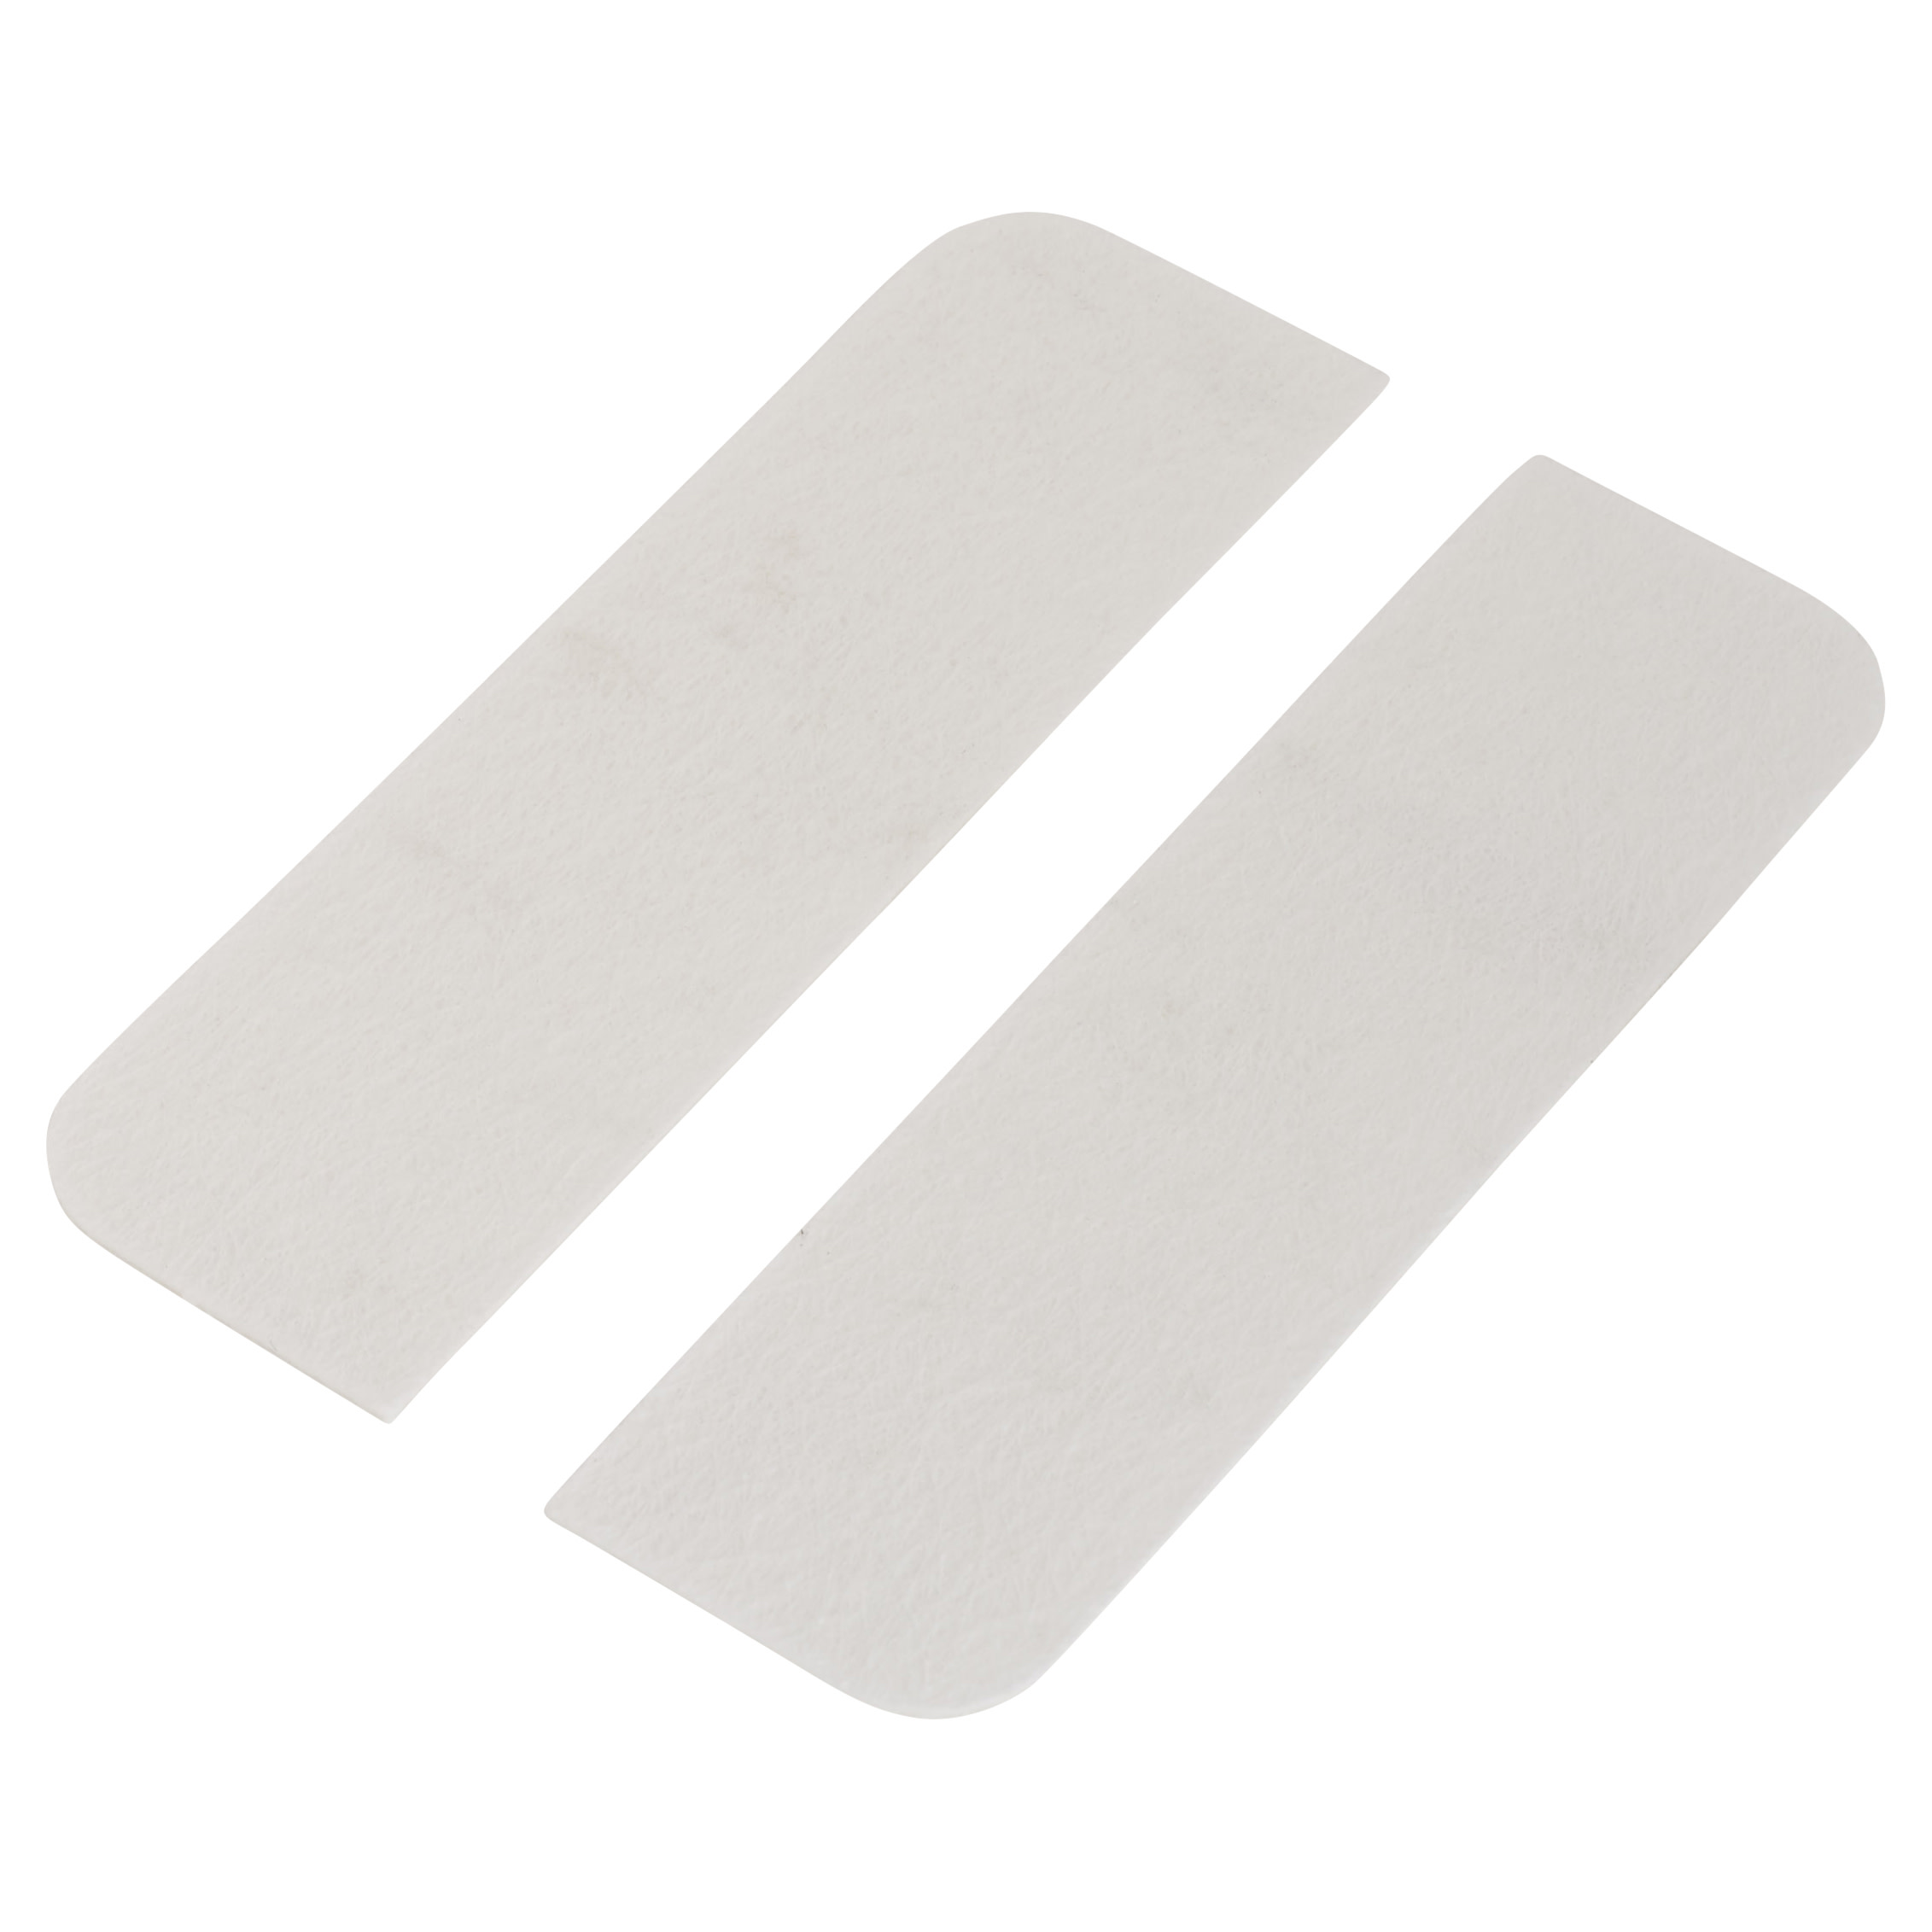 Interdens® Radiused Intumescent Pads For FD30 & FD60 - 100 x 30 x 1mm - Pack 24)